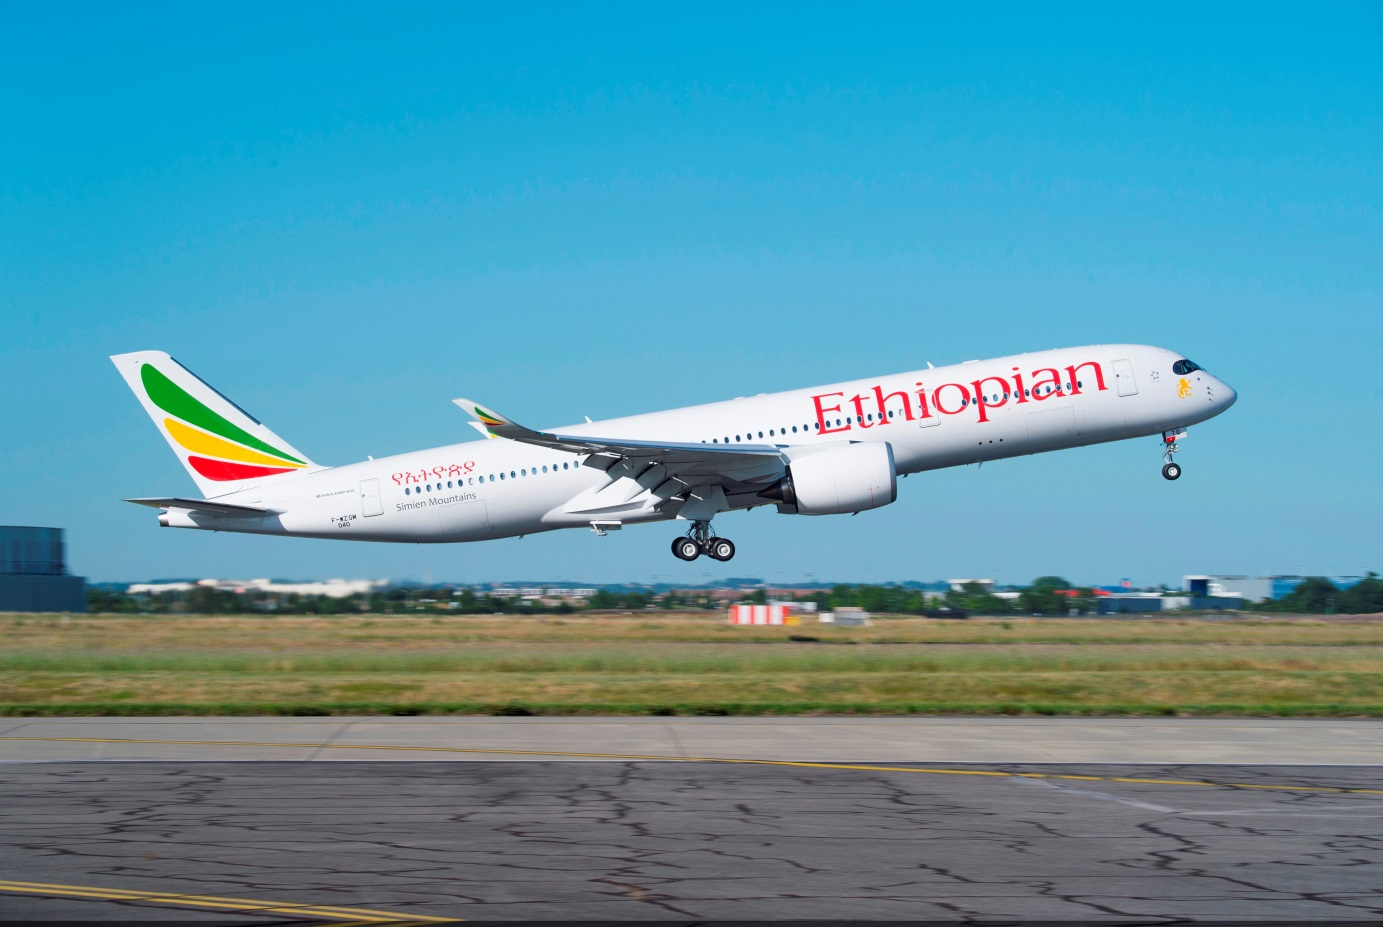 Avion Ethiopian Airline